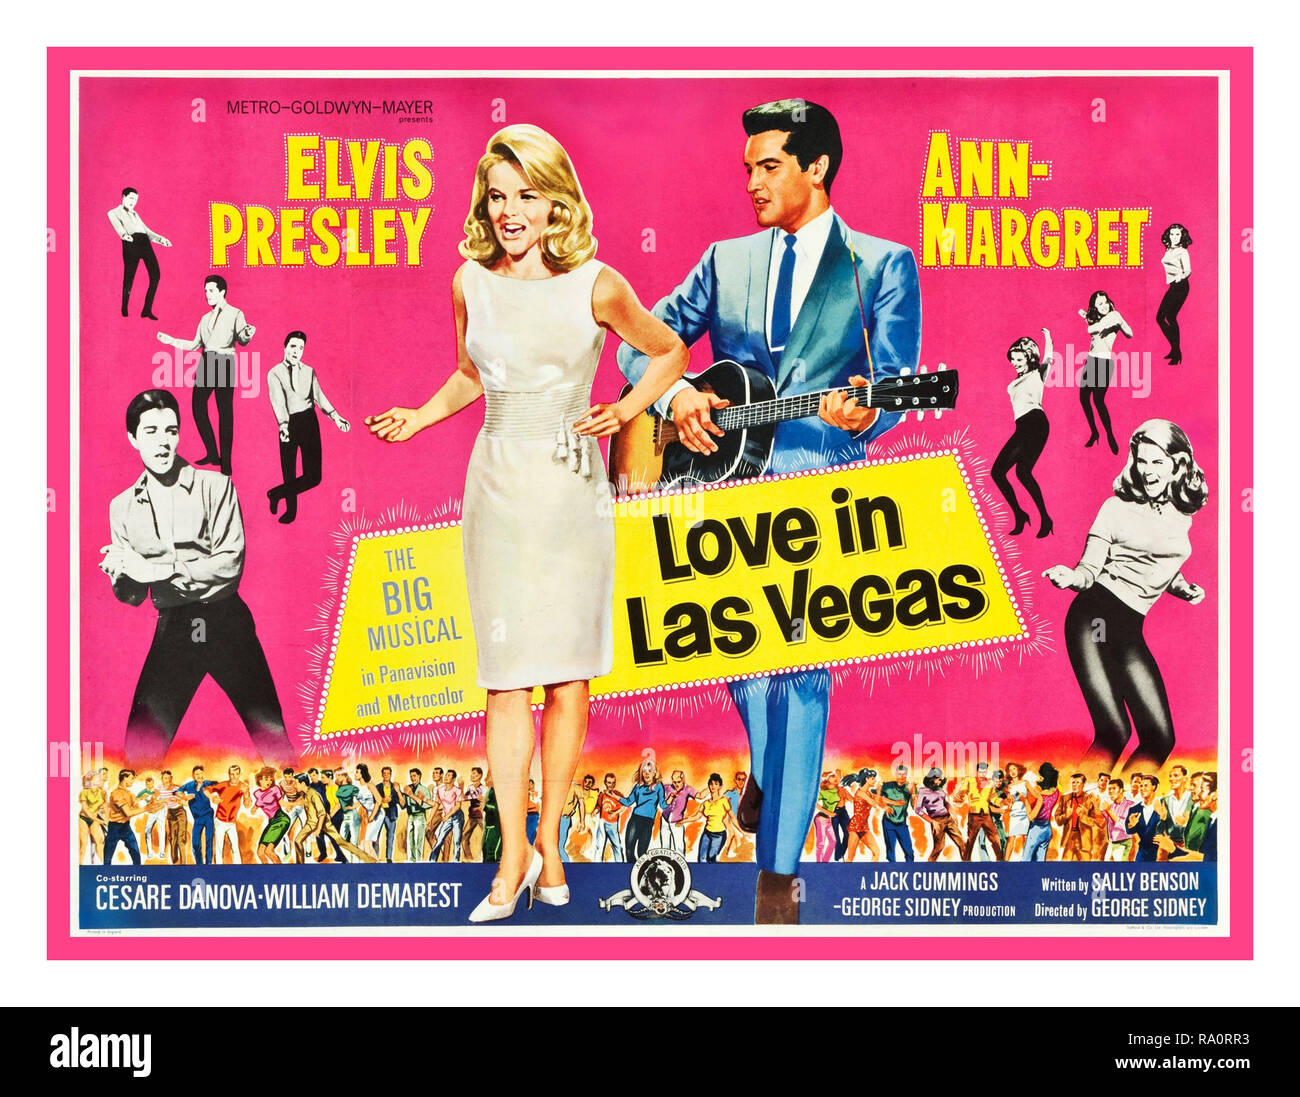 VIVA LAS VEGAS ('LOVE IN LAS VEGAS') Vintage Elvis Presley Movie Film Cinema Musical Poster 1964 alternative title ''Love in Las Vegas' starring Elvis Presley Ann Margret, Cesare Danova, William Demarest Directed by George Sidney Written by Sally Benson. Produced by Jack Cummings/George Sidney 1960's USA In Great Britain, both the movie and its soundtrack were sold as Love In Las Vegas to avoid a conflict with a similarly named different ' Viva Las Vegas' movie in the UK - Stock Image